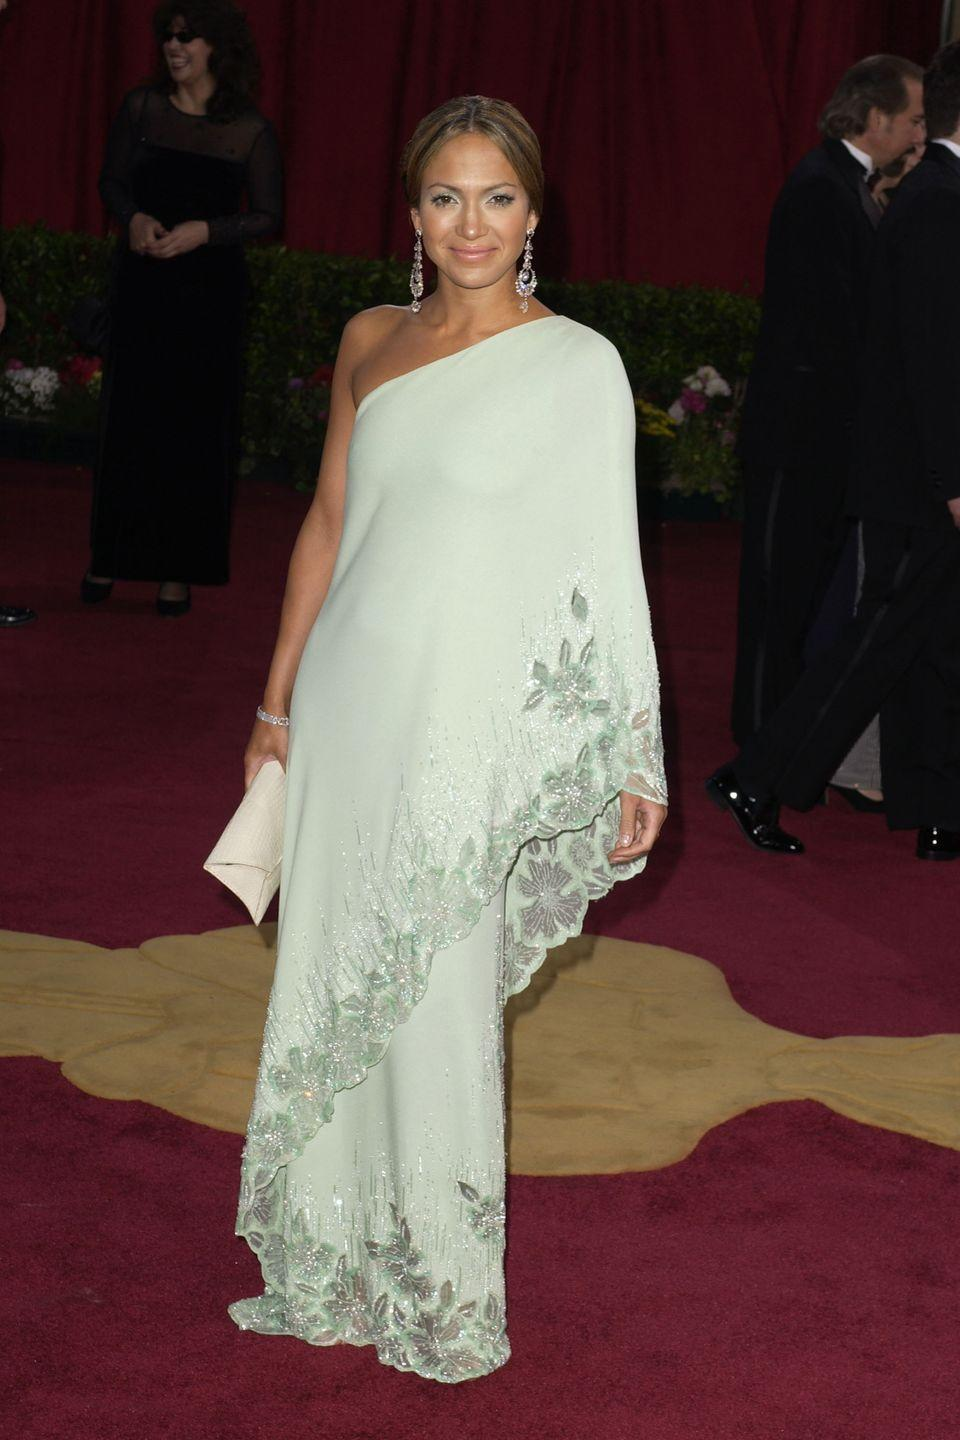 <p>While the shape of the Valentino dress Jennifer Lopez wore to the 2003 Academy Awards is quite different from Tiana's voluminous ballgown, the mint green color and the floral motifs are spot-on.</p>